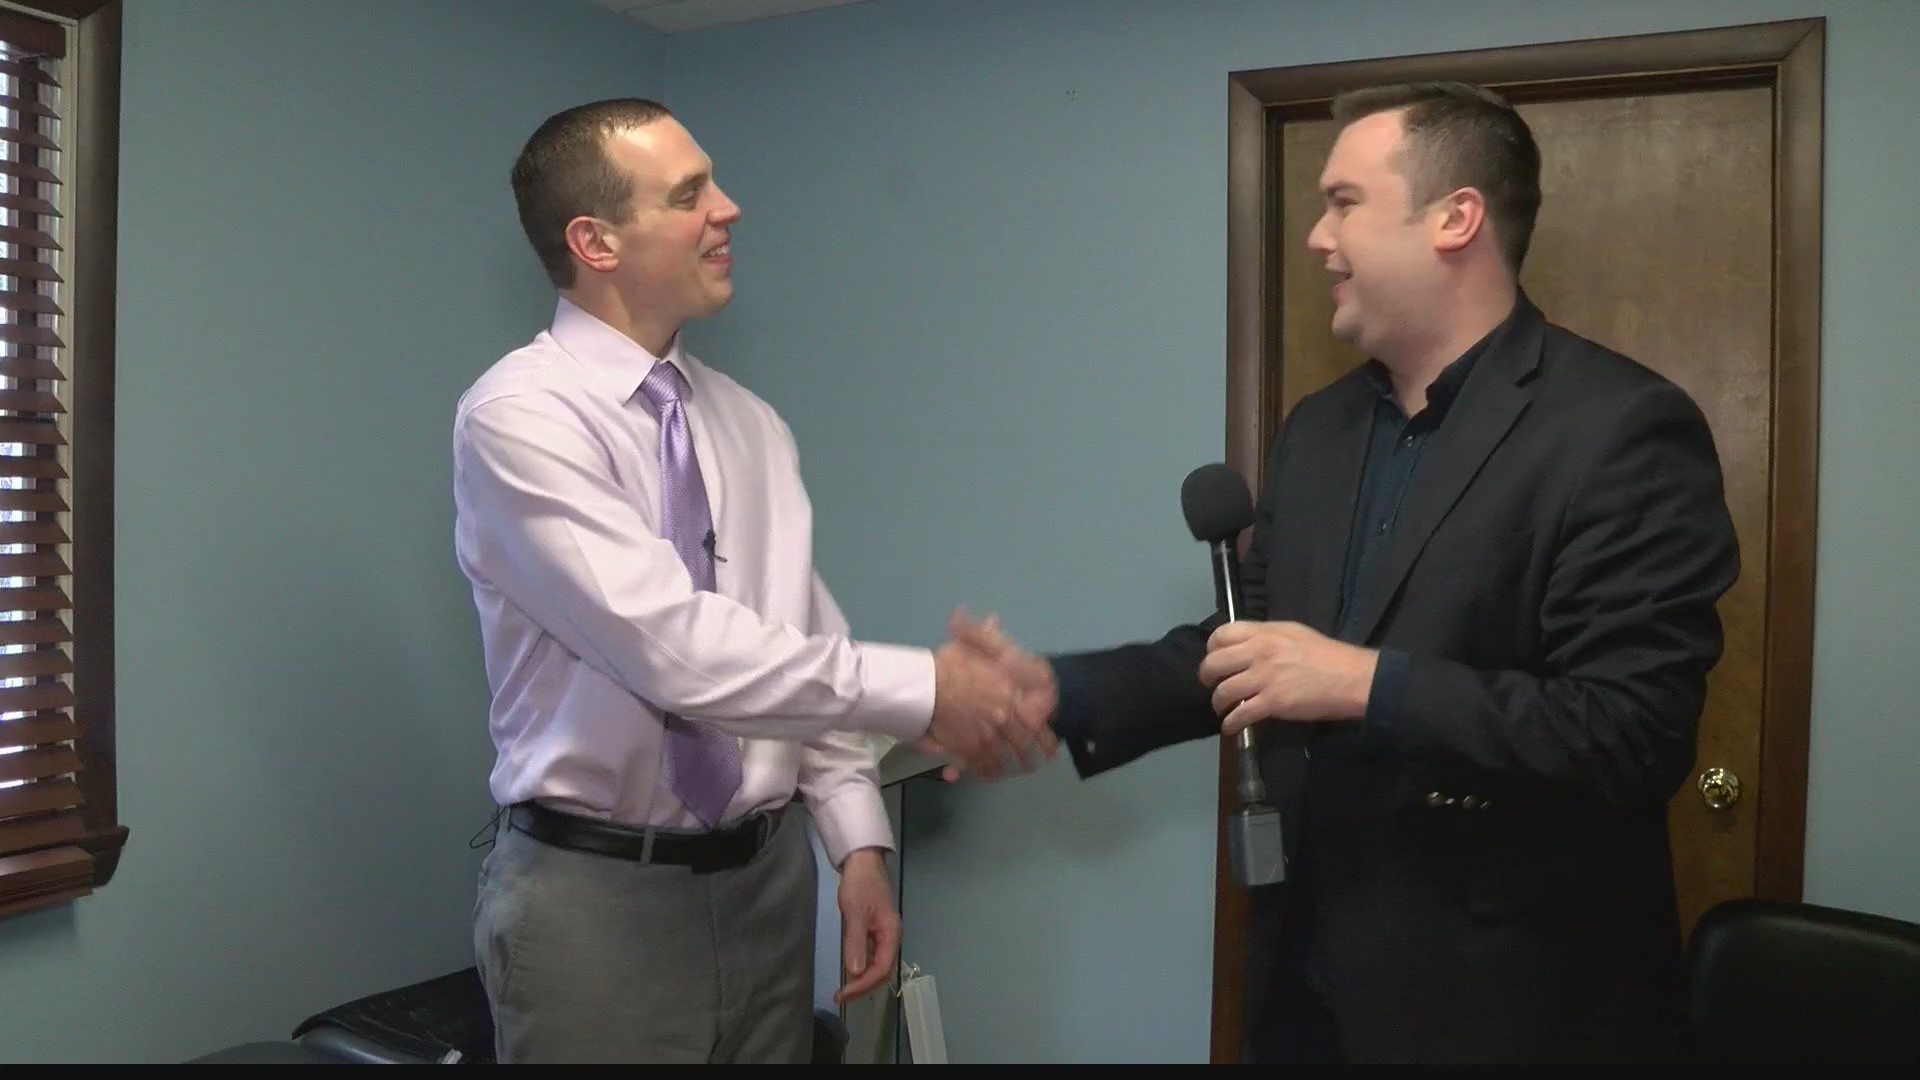 Central PA Live: Chiropractic Life Center